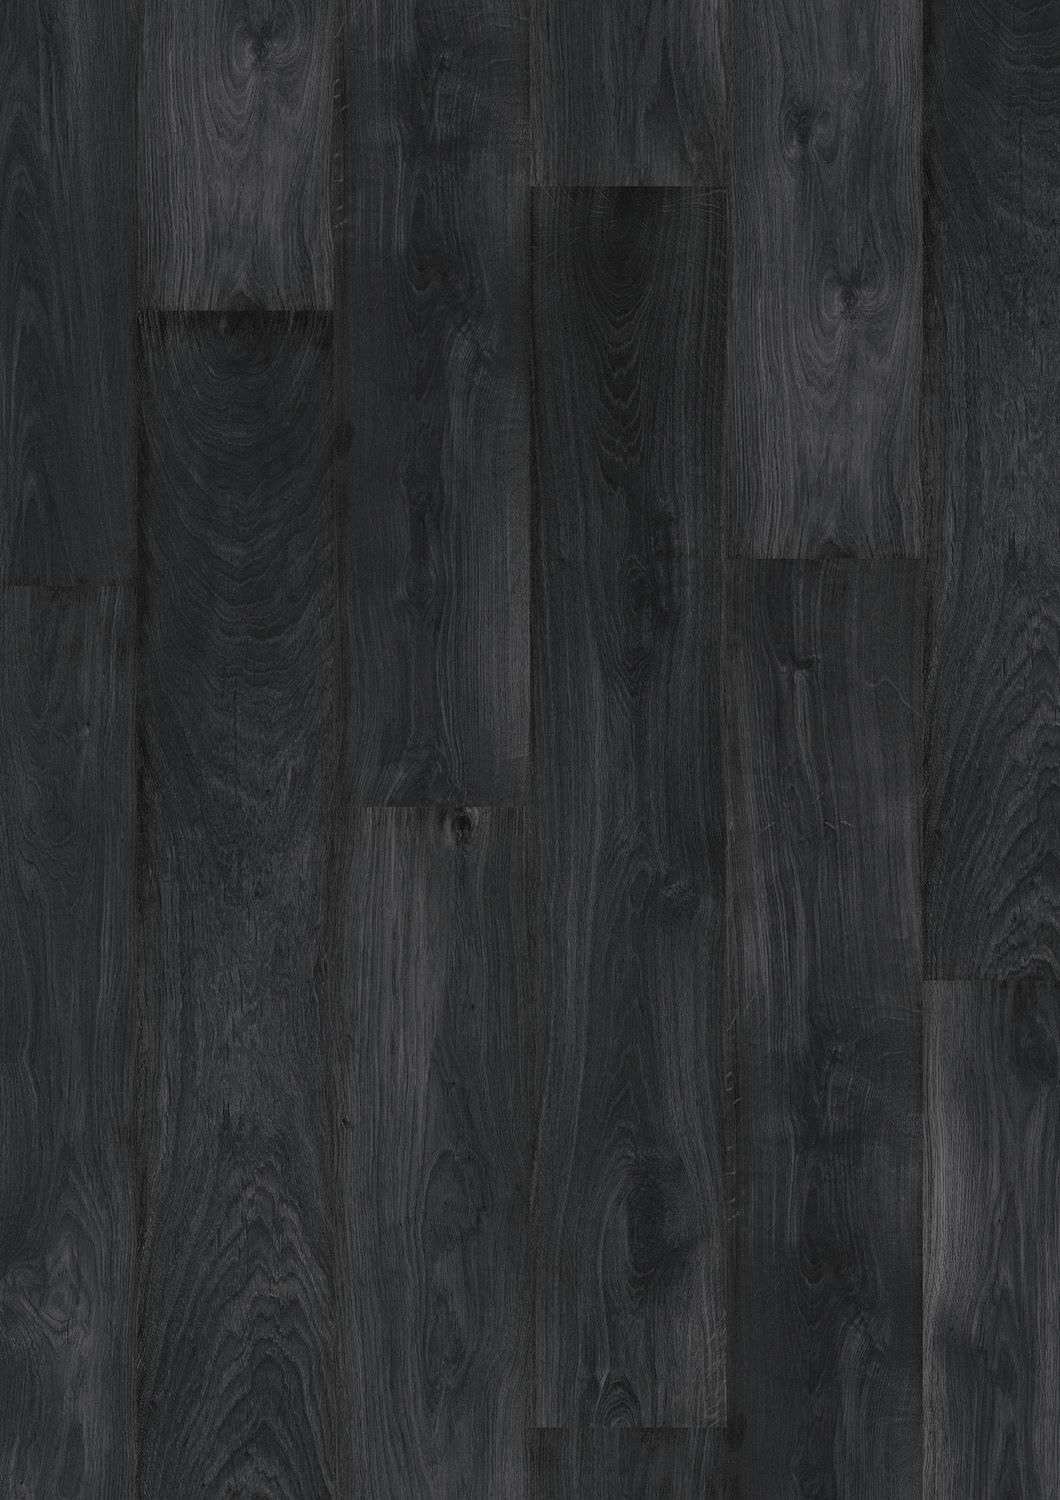 Black Oak Wooden Flooring1060 X 1500